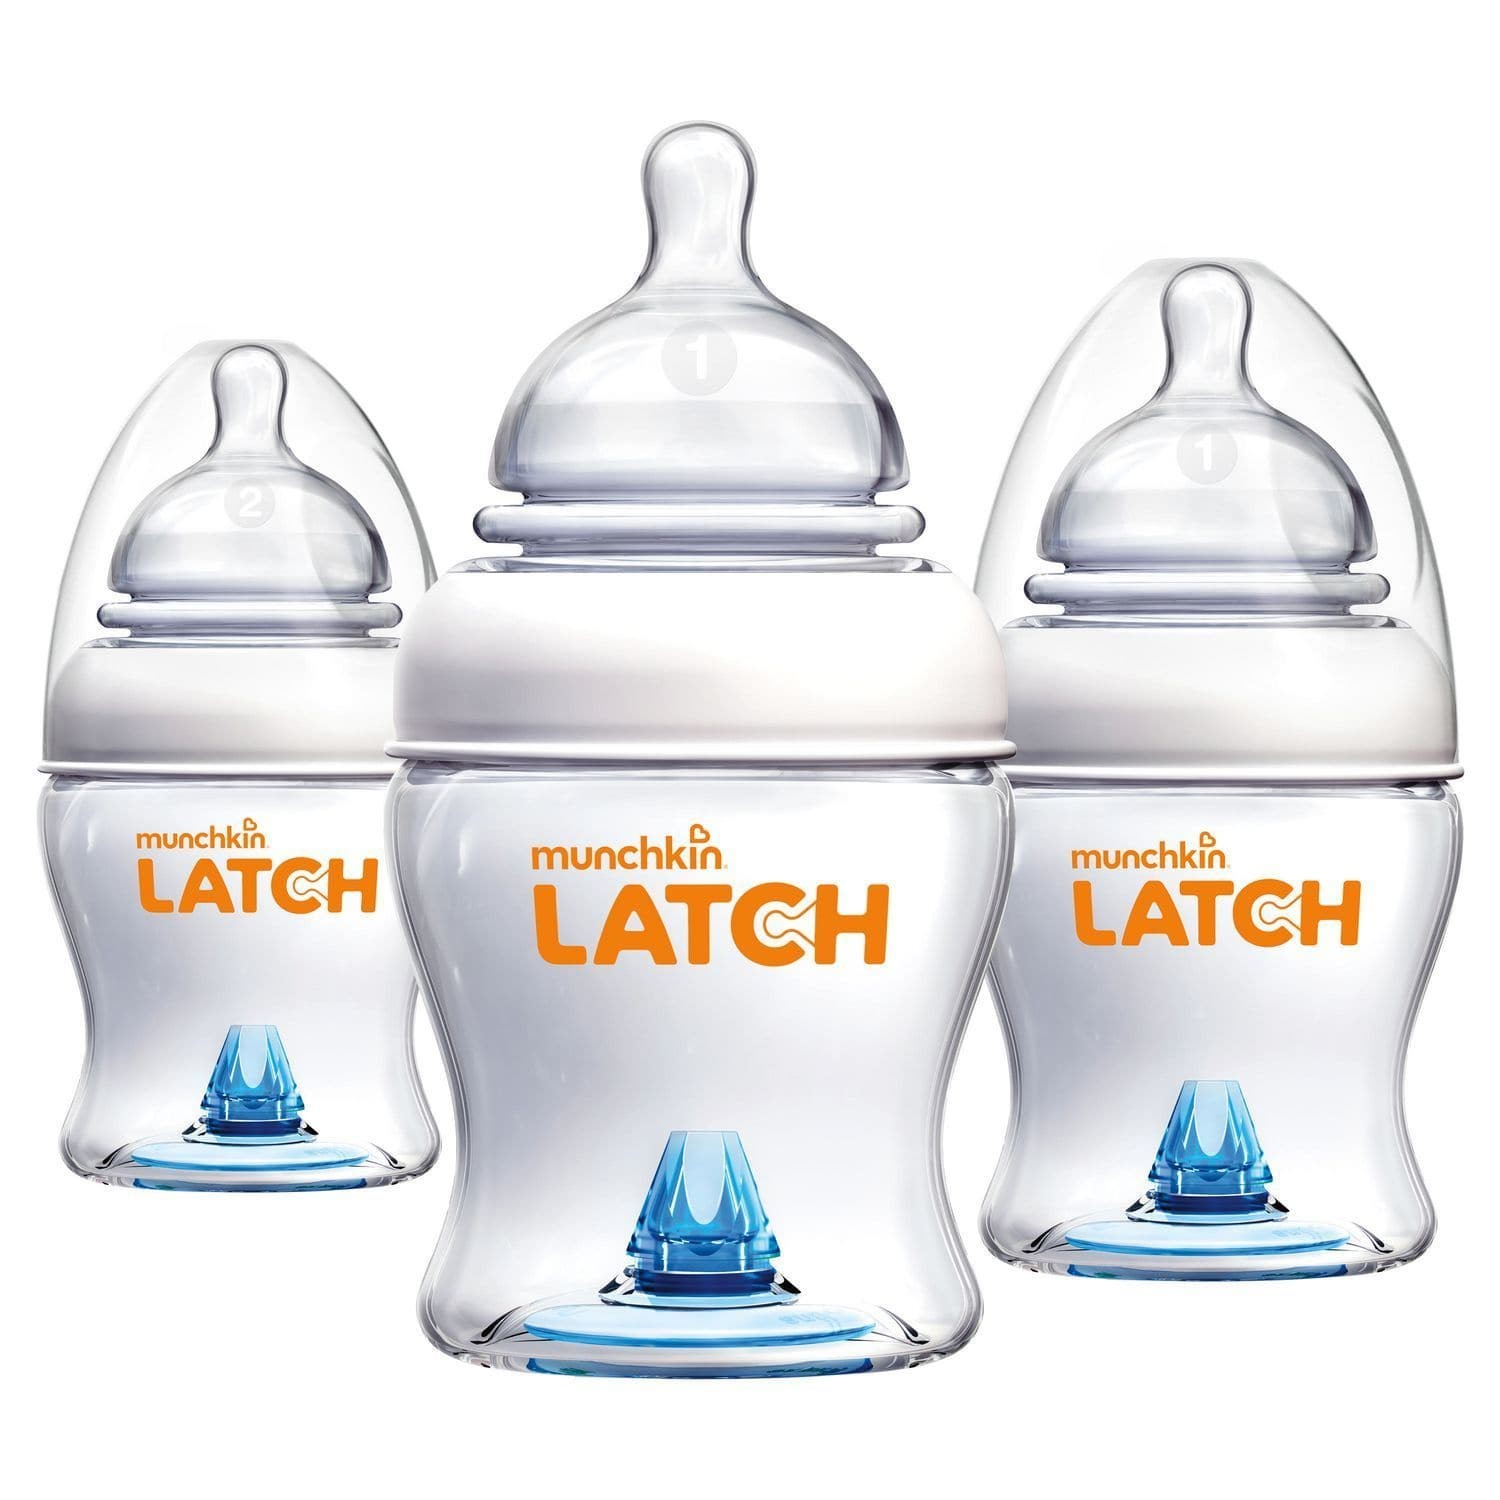 Munchkin Latch 4 oz Bottle BPA Free, 3 ct